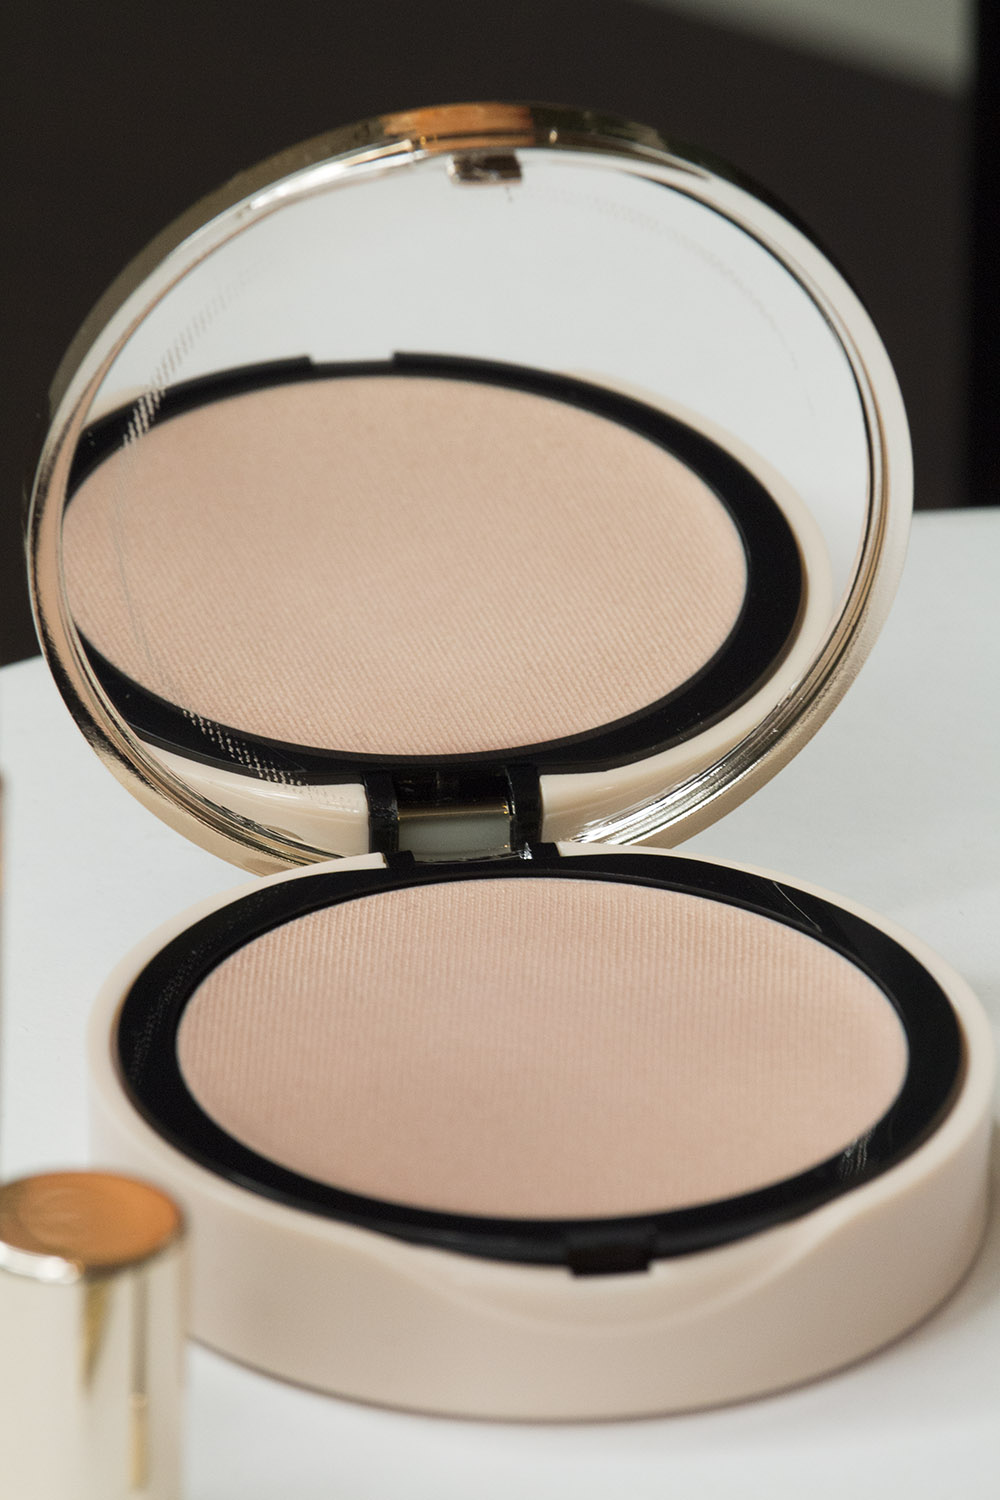 PUPA PINK MUSE CREAM HIGHLIGHTER